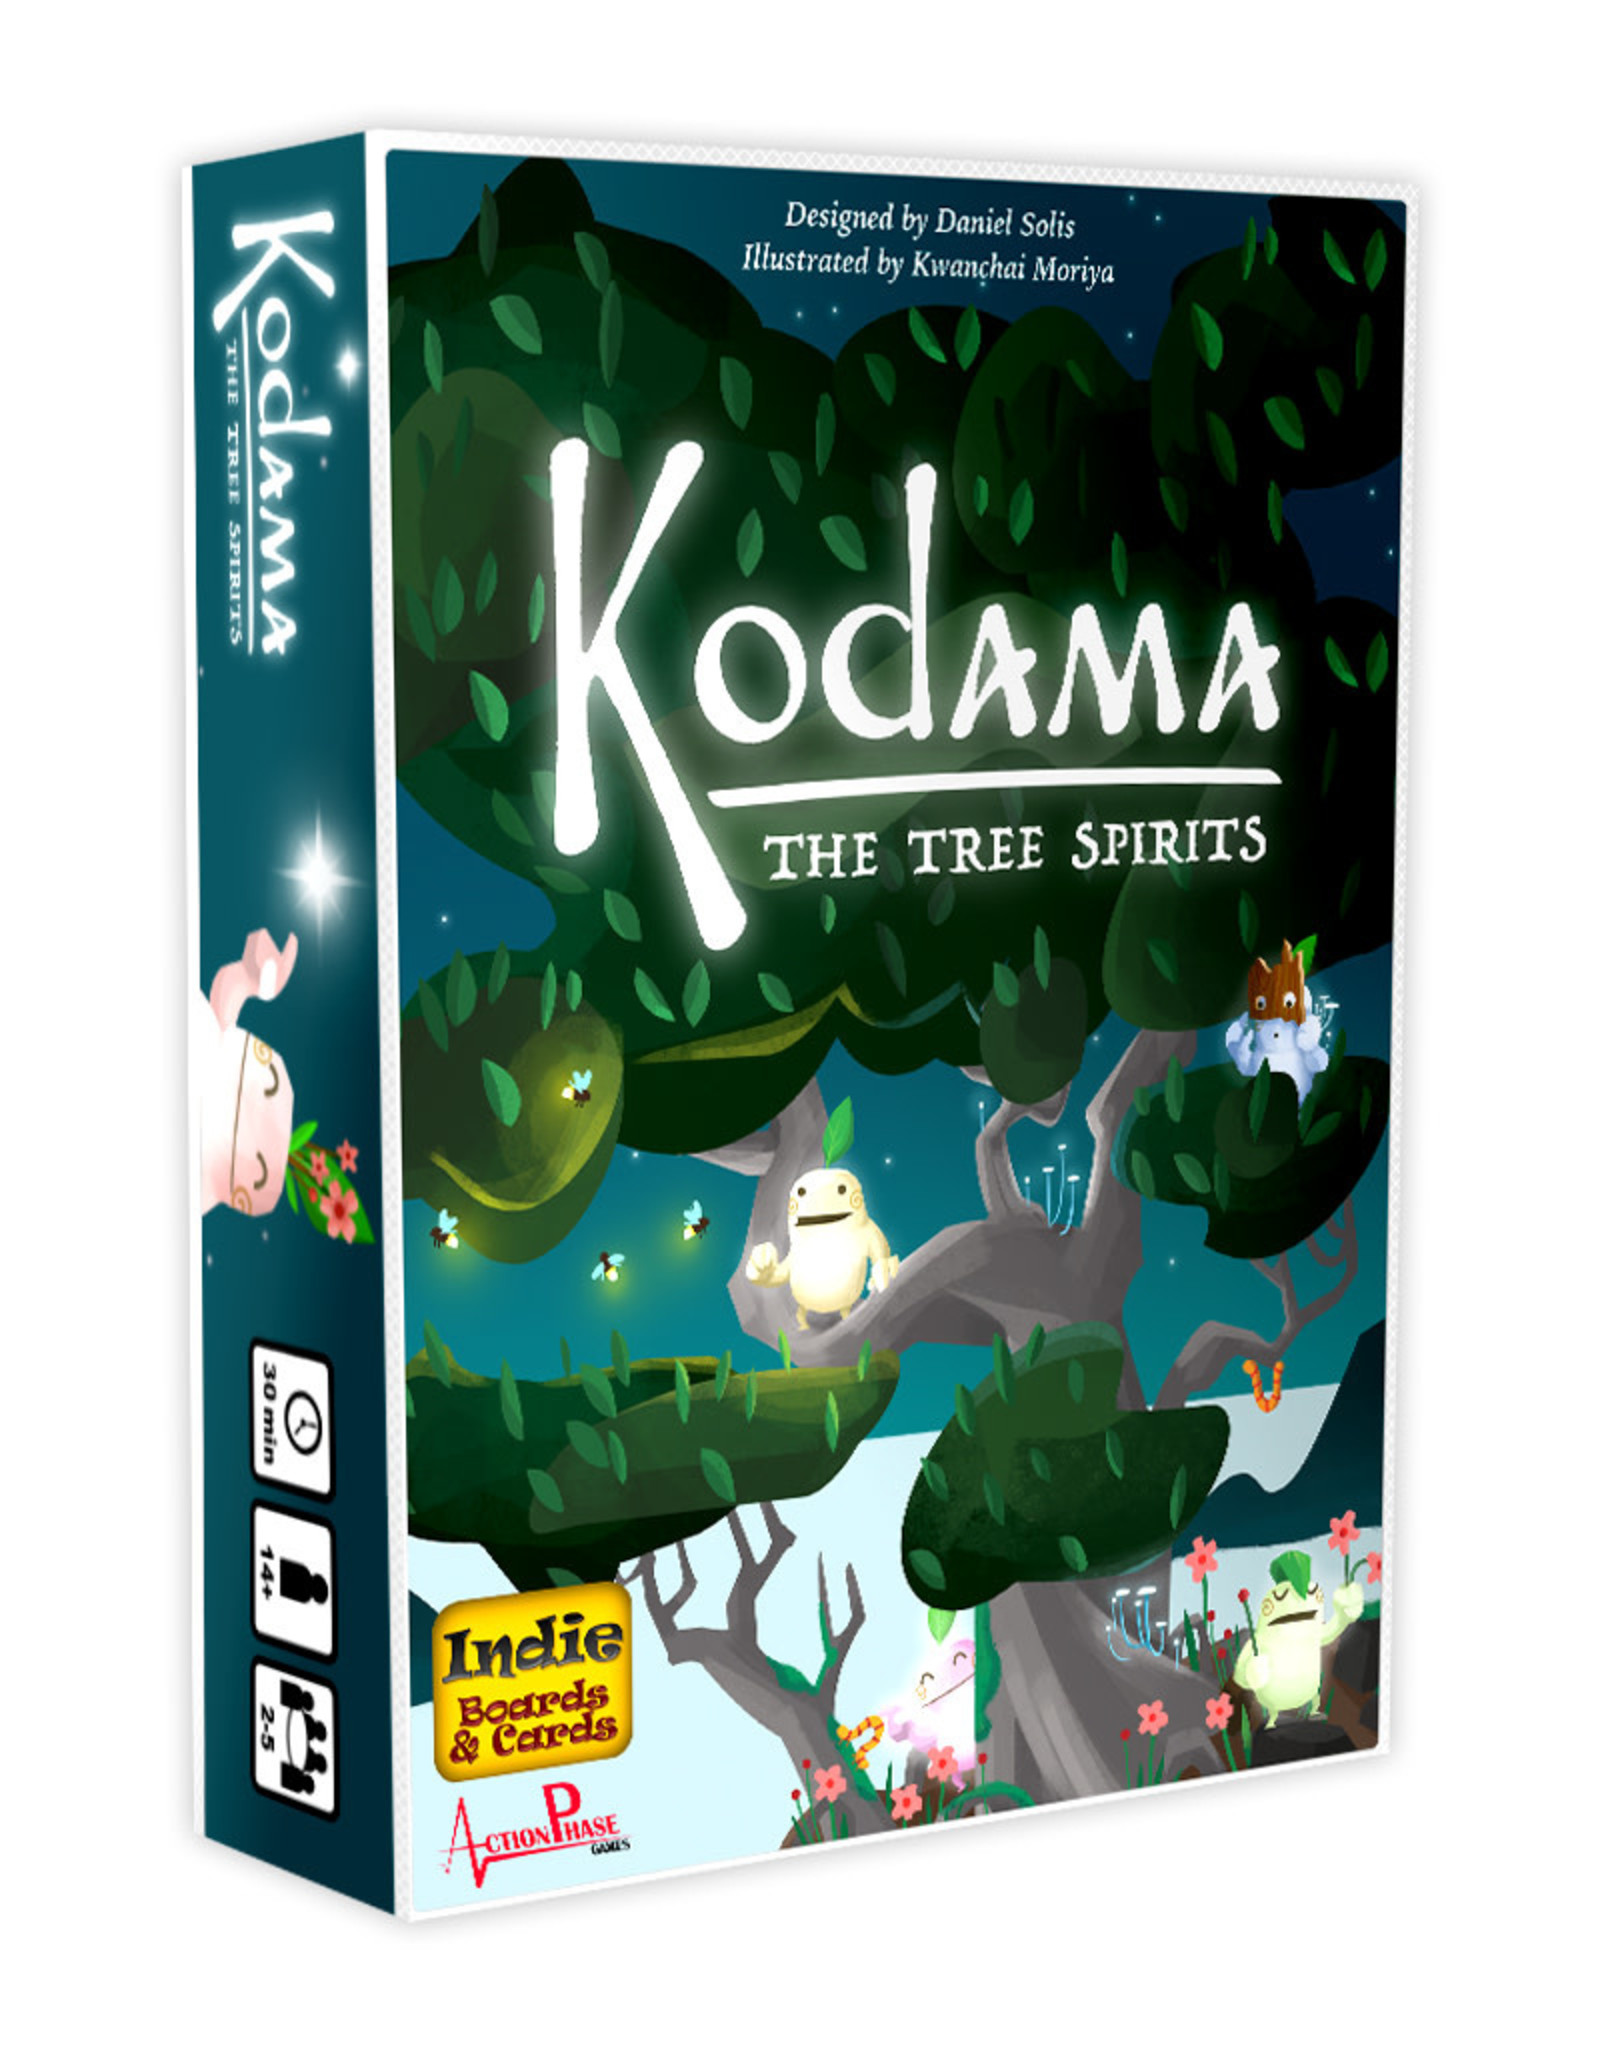 indie boards and cards Kodama: The Tree Spirits